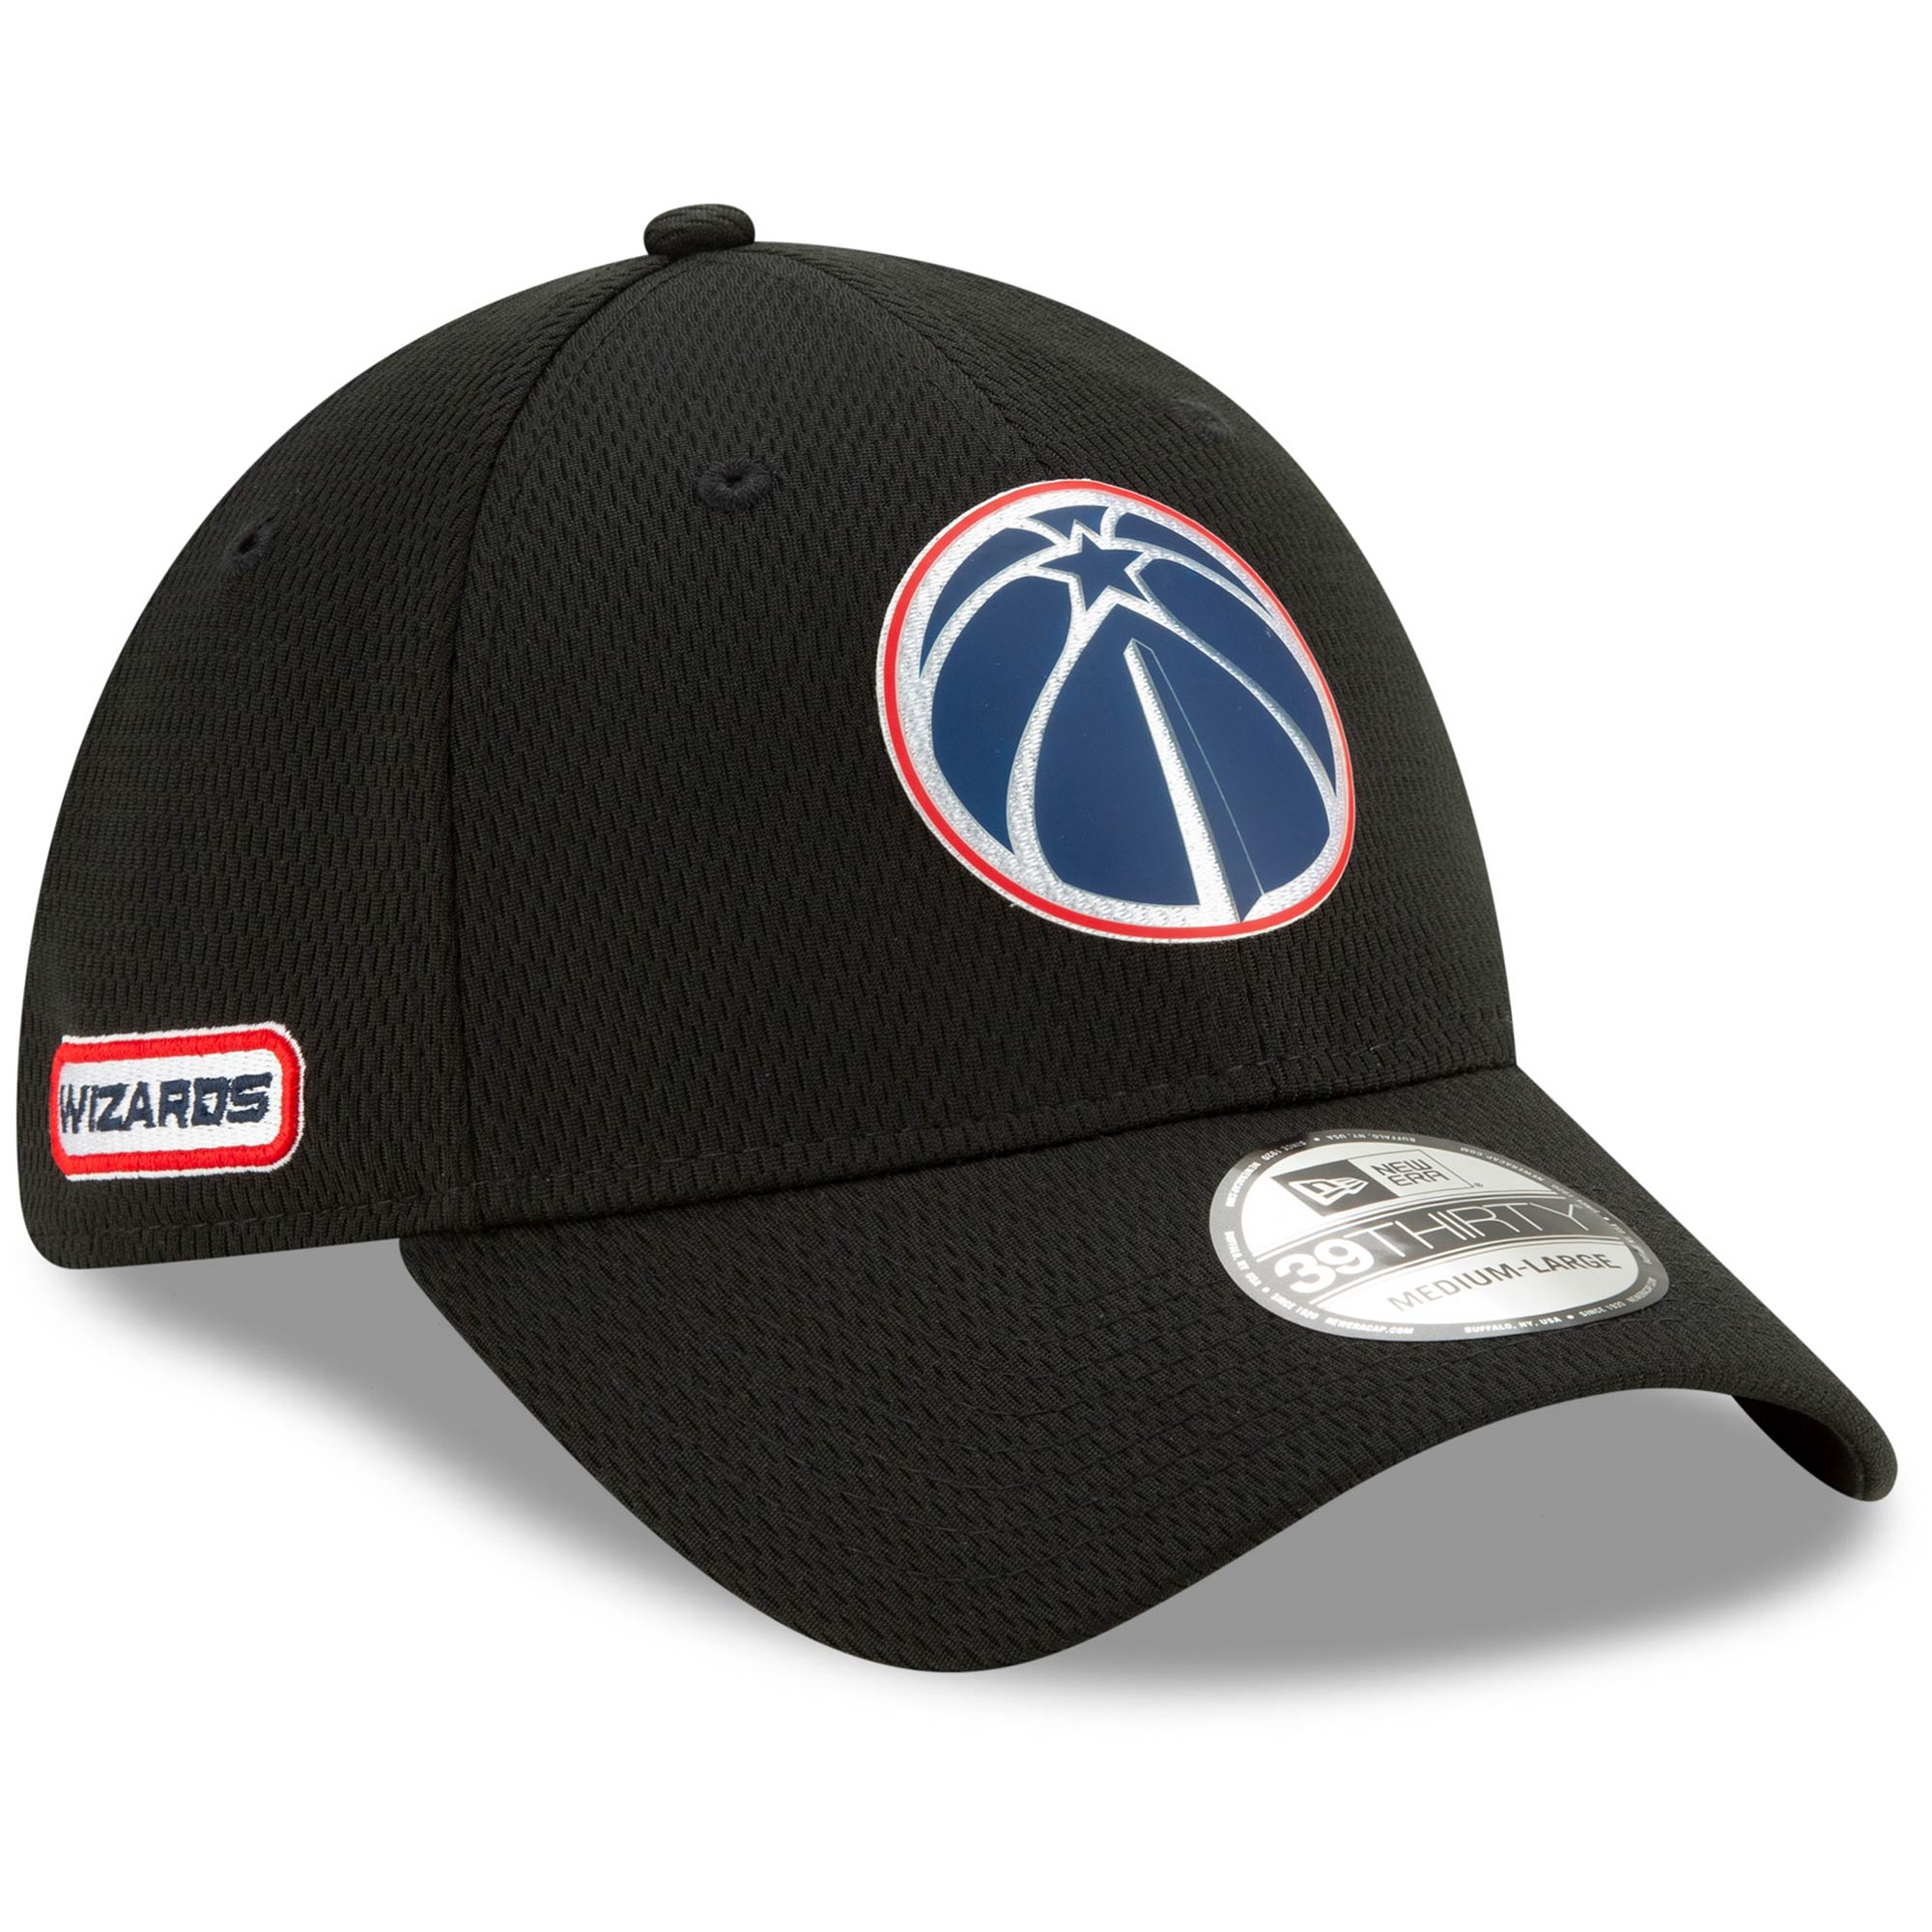 Washington Wizards New Era Official Back Half 39THIRTY Flex Hat - Black